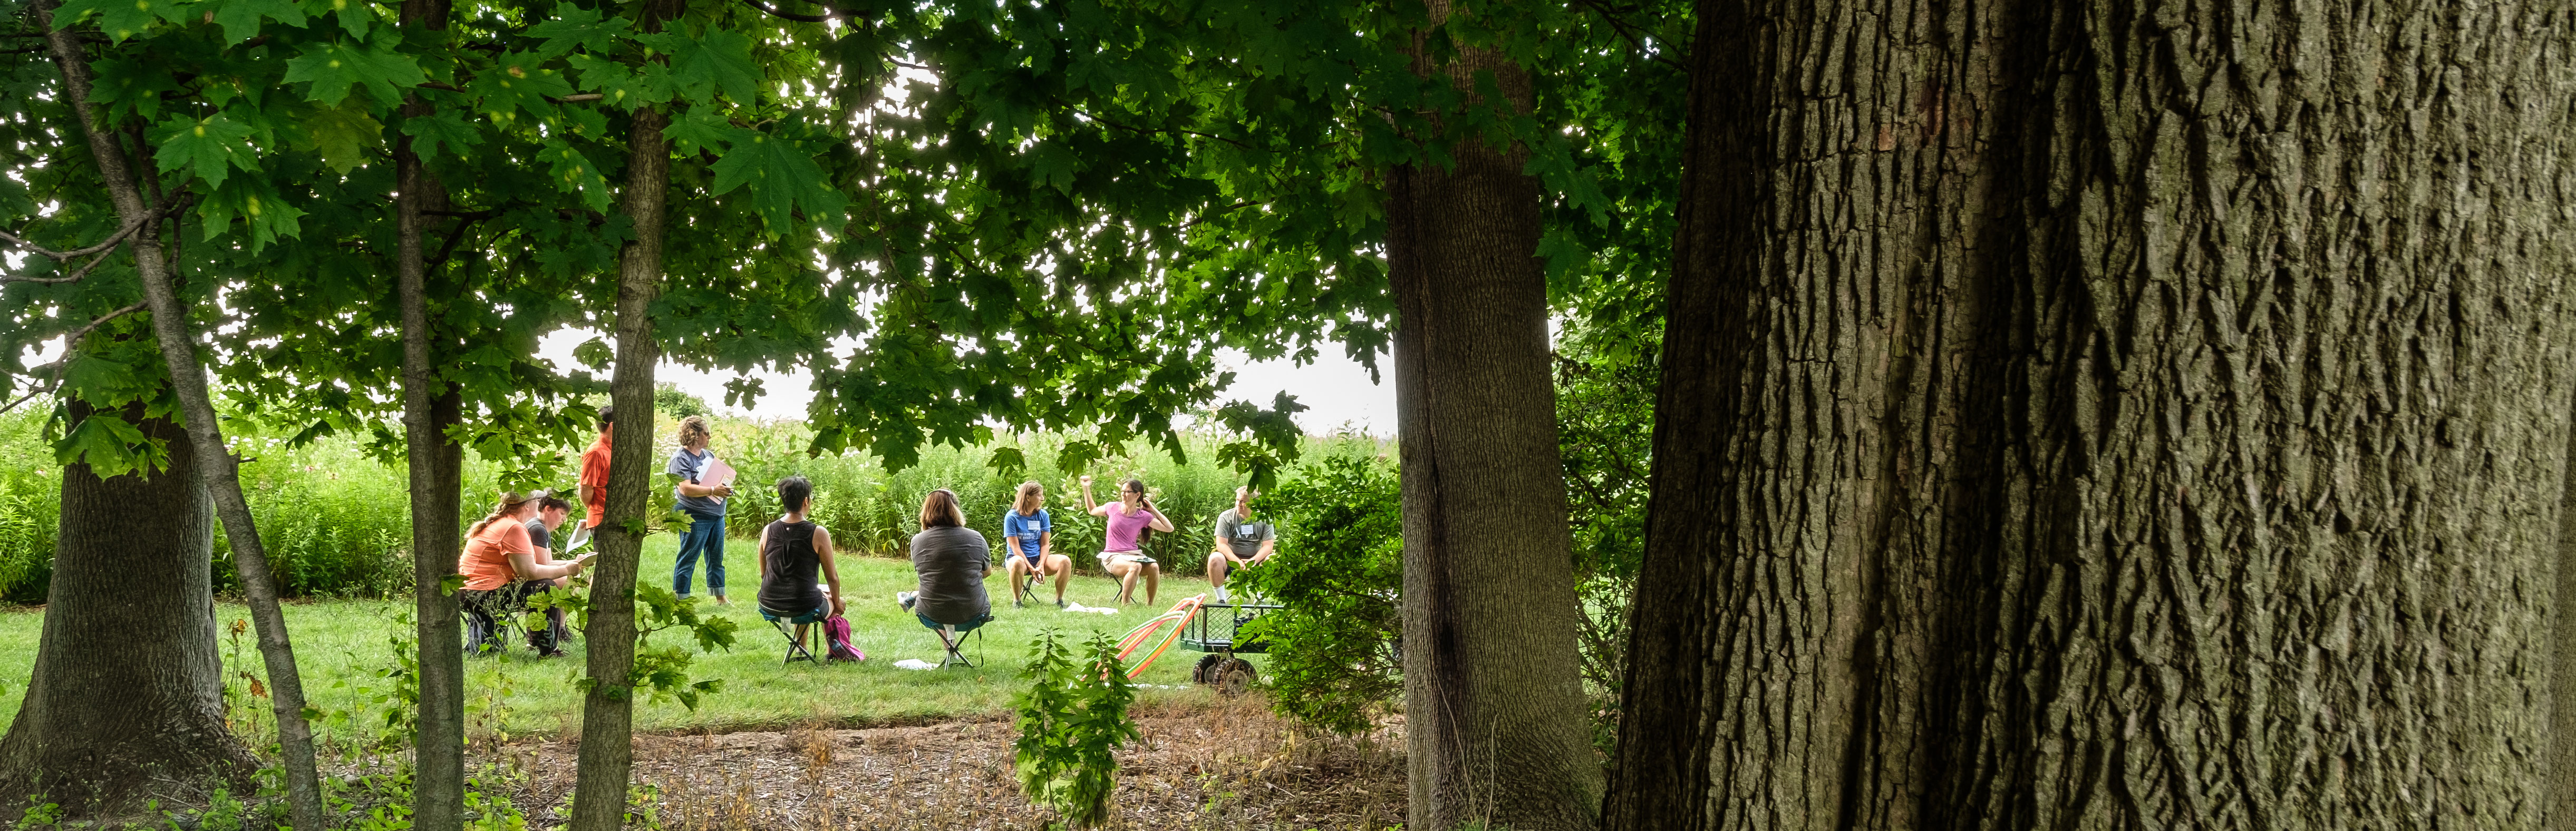 Fueling outdoor learning